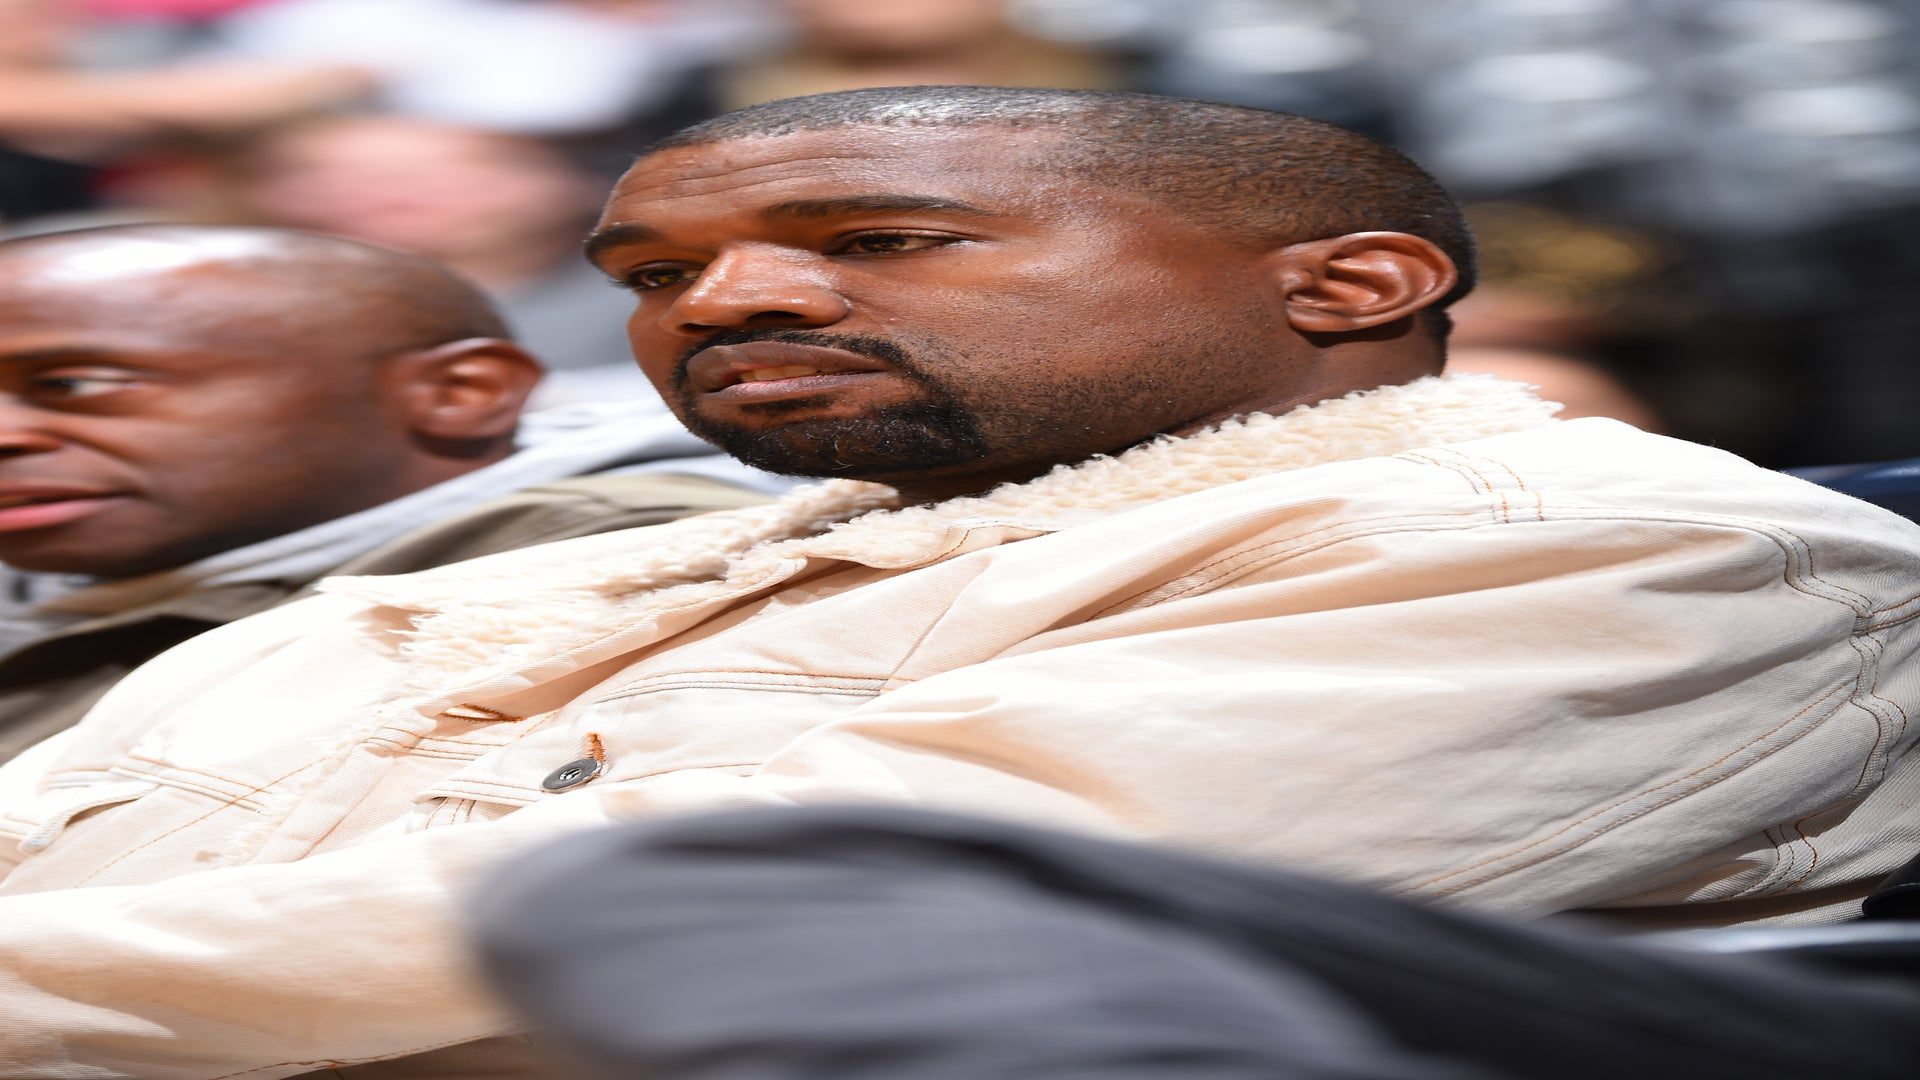 Kanye West's Yeezy Fashion Line Is Being Sued